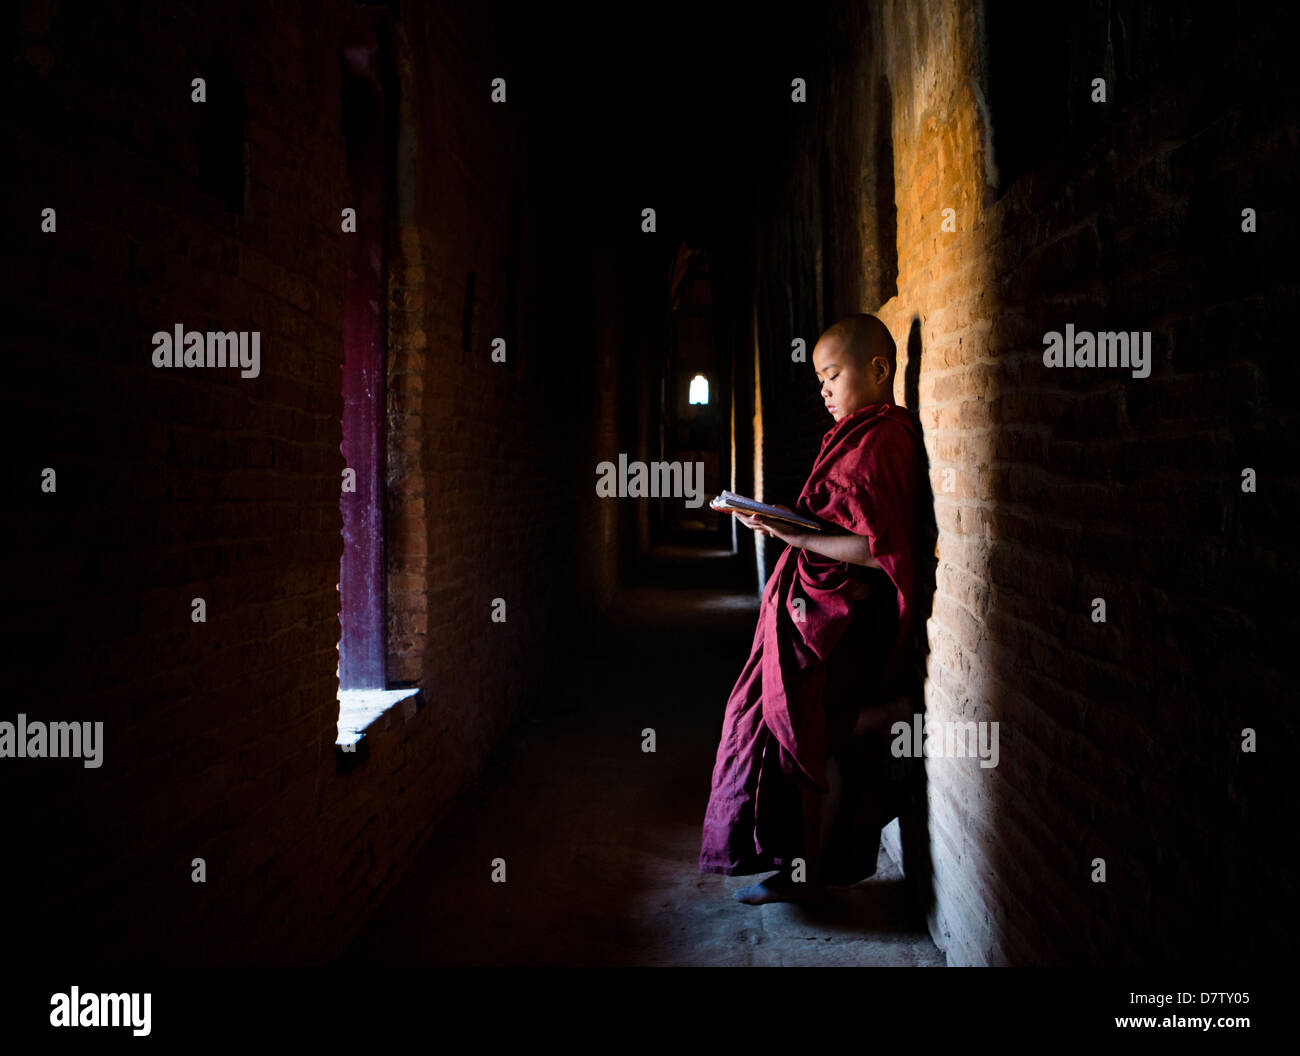 Novice Buddhist monk reading Buddhist scriptures in the light of a window in one of the many temples of Bagan, Burma - Stock Image